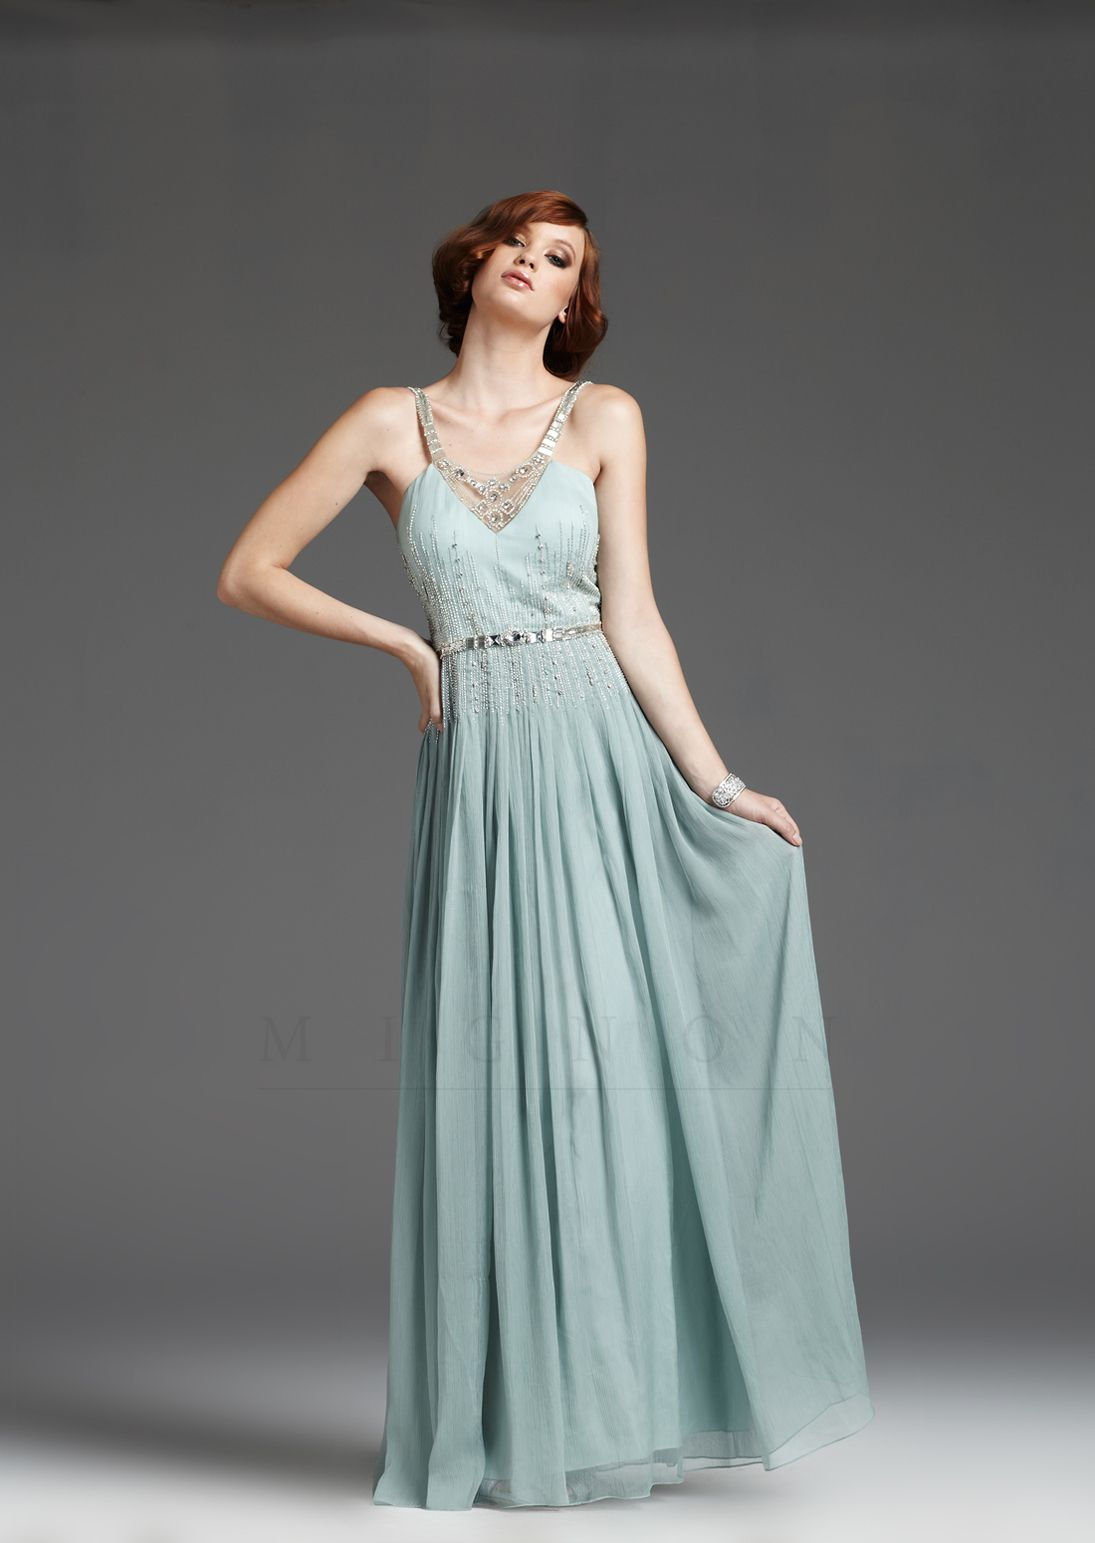 Seamist 1930's Style Grecian Silver Beaded Elegant Prom Dress ...